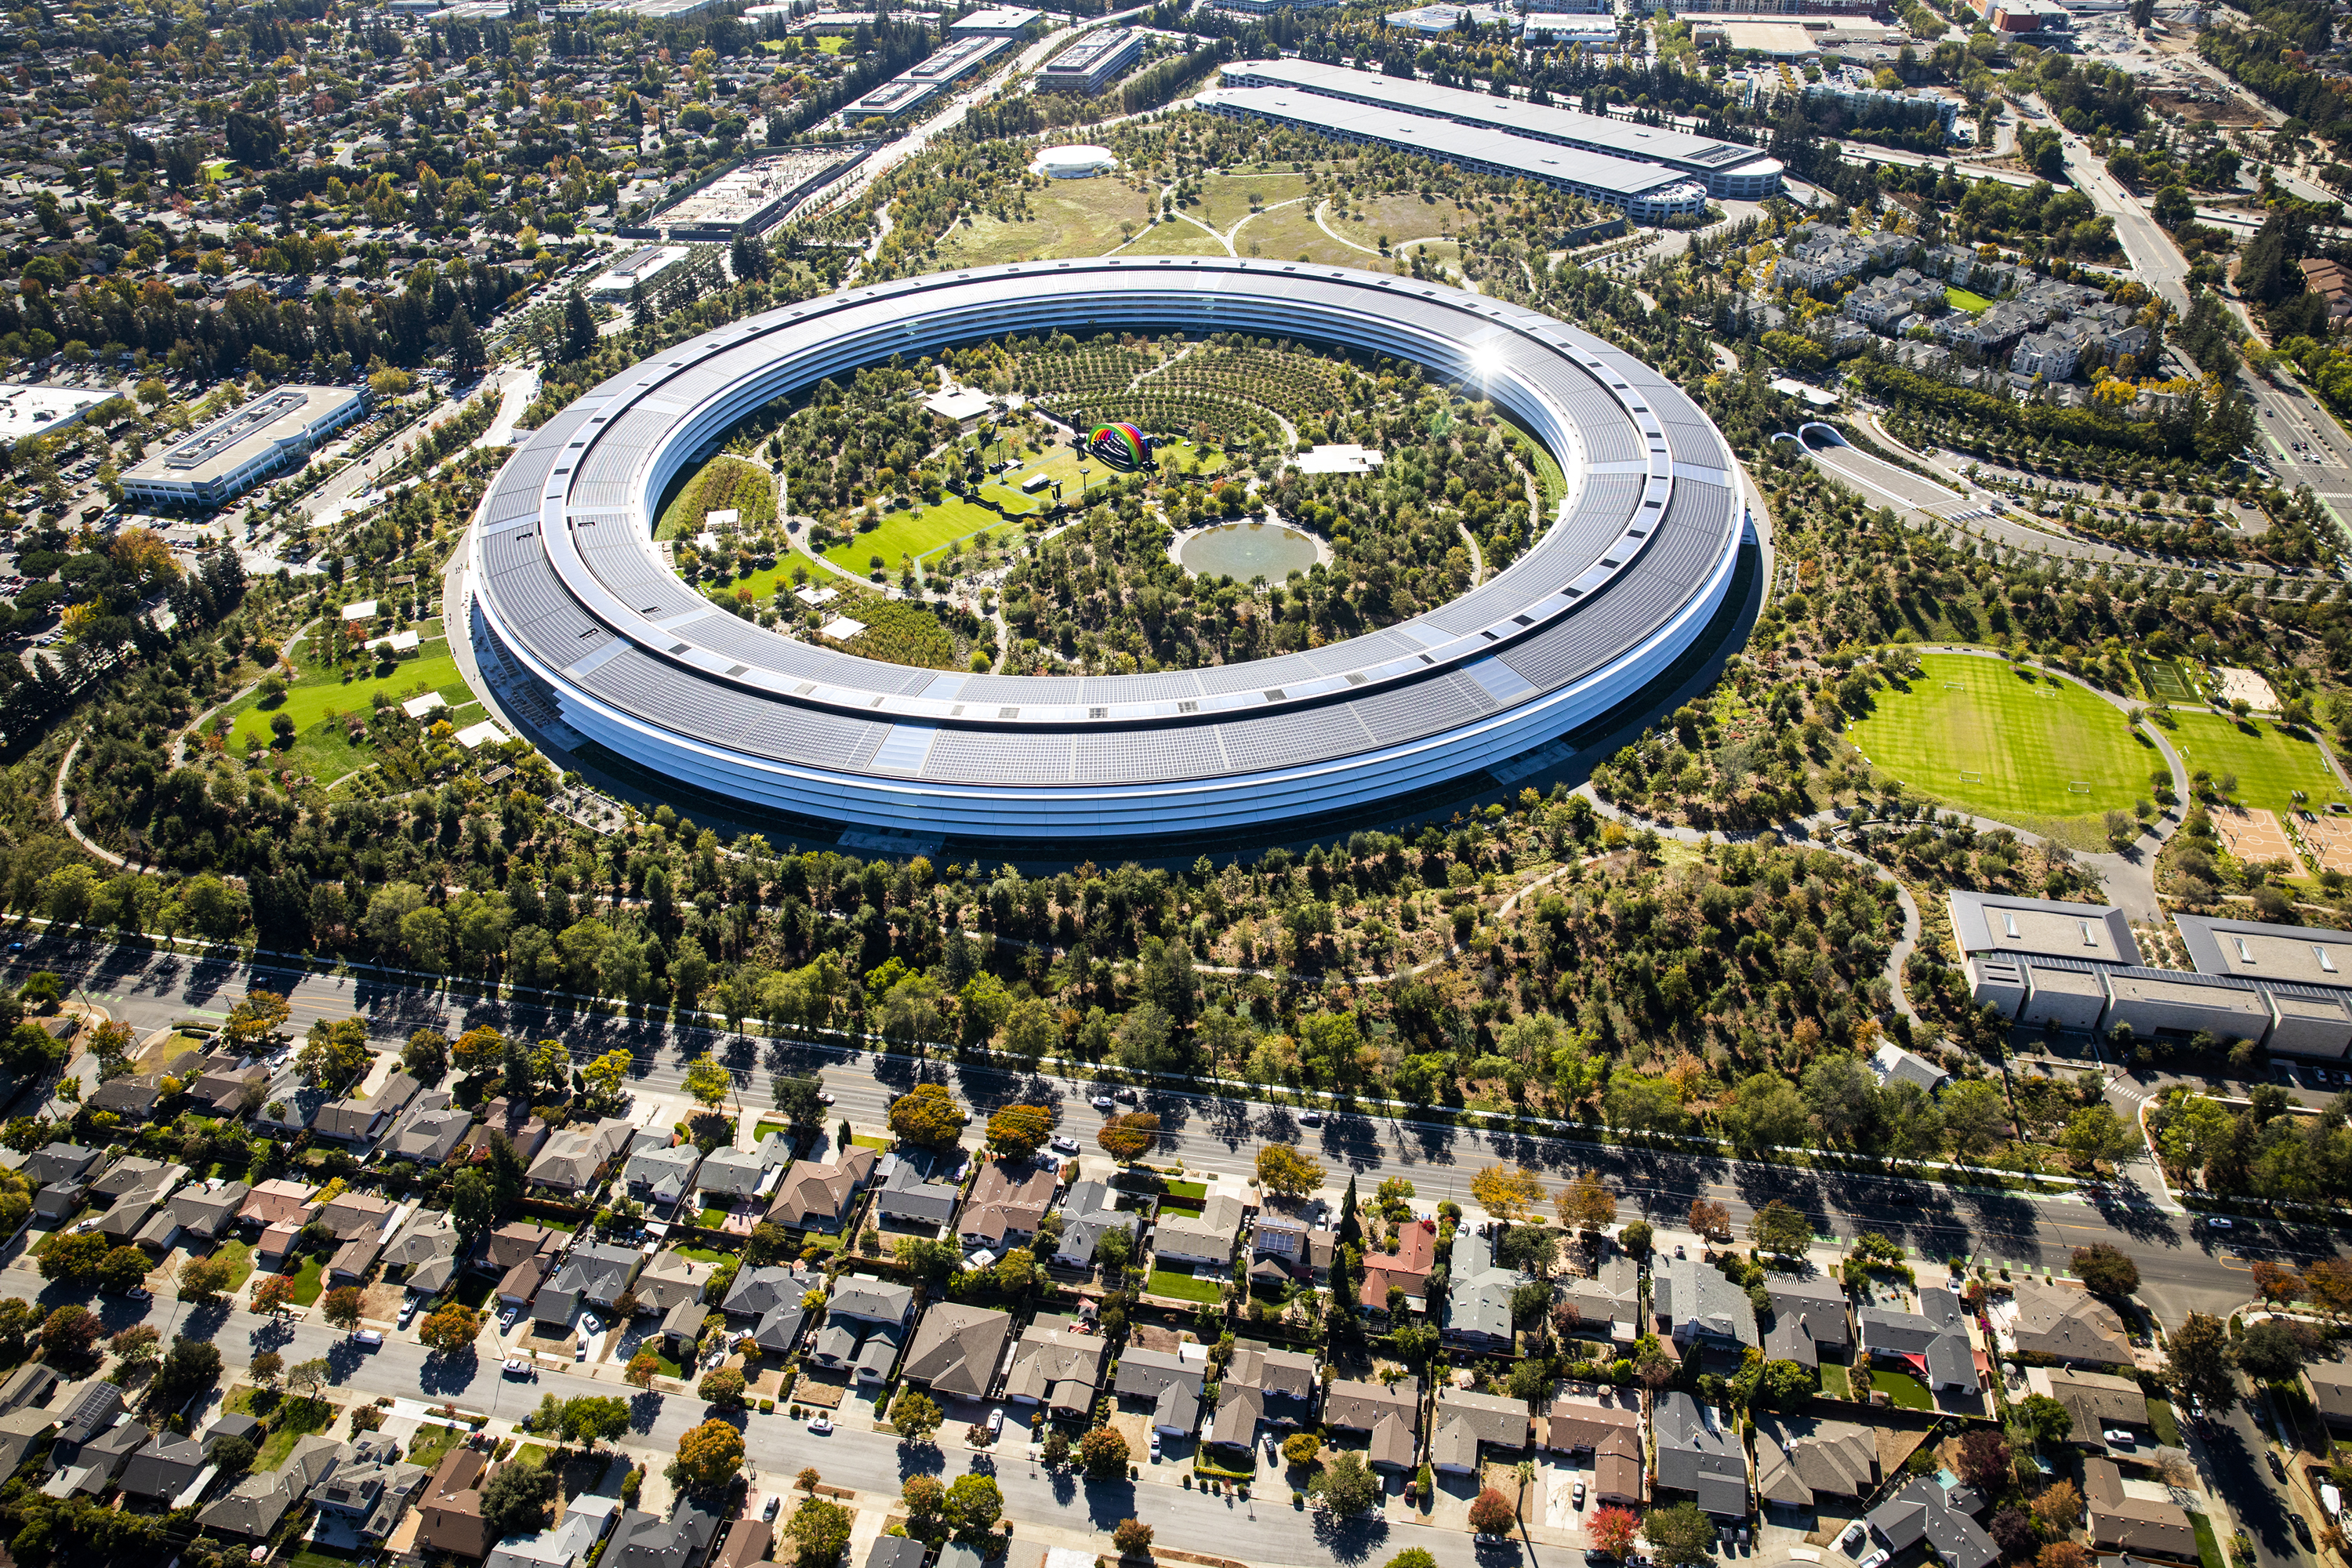 The ring-shaped Apple headquarters building in Cupertino, California, seen from the air.